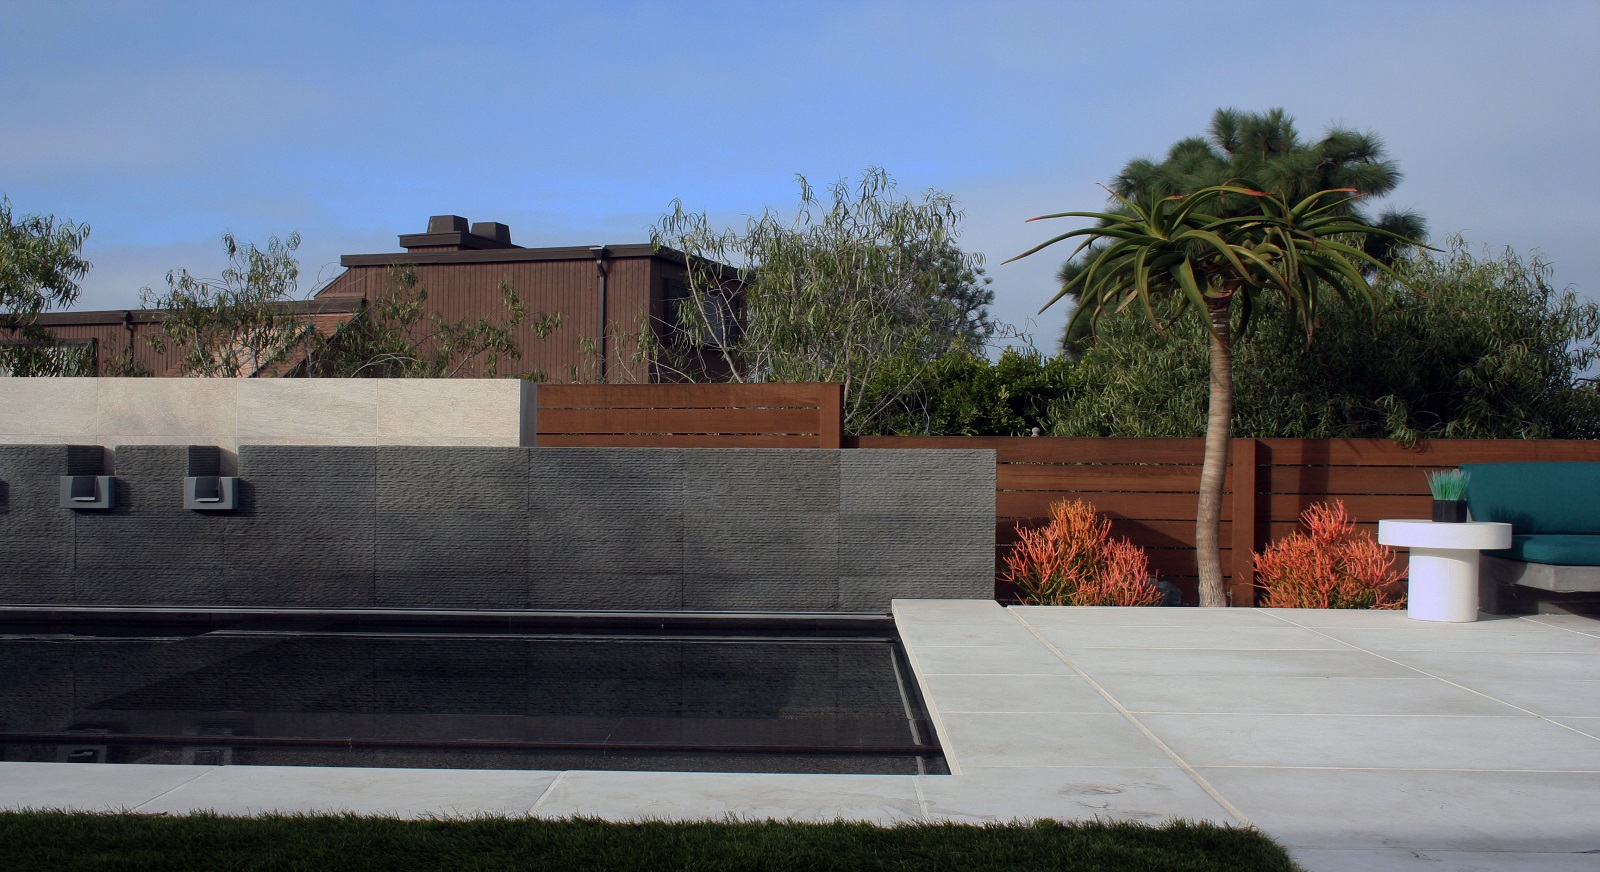 cross construction remodel landscape pool basalt fence spa hardscape